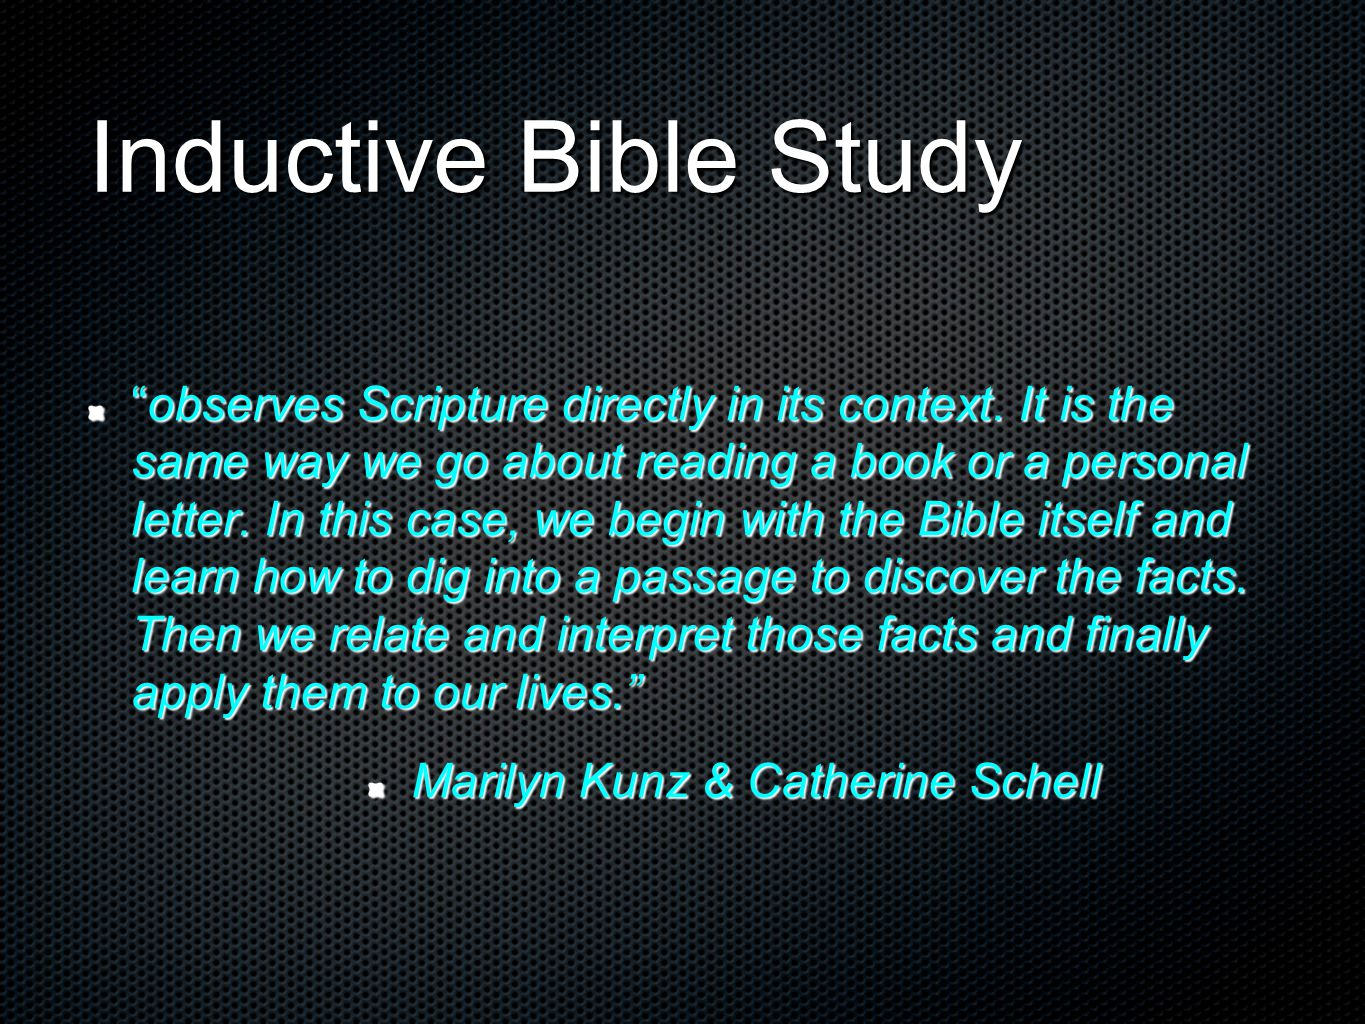 """Inductive Bible Study """"observes Scripture directly in its context. It is the same way we go about reading a book or a personal letter. In this case, w"""